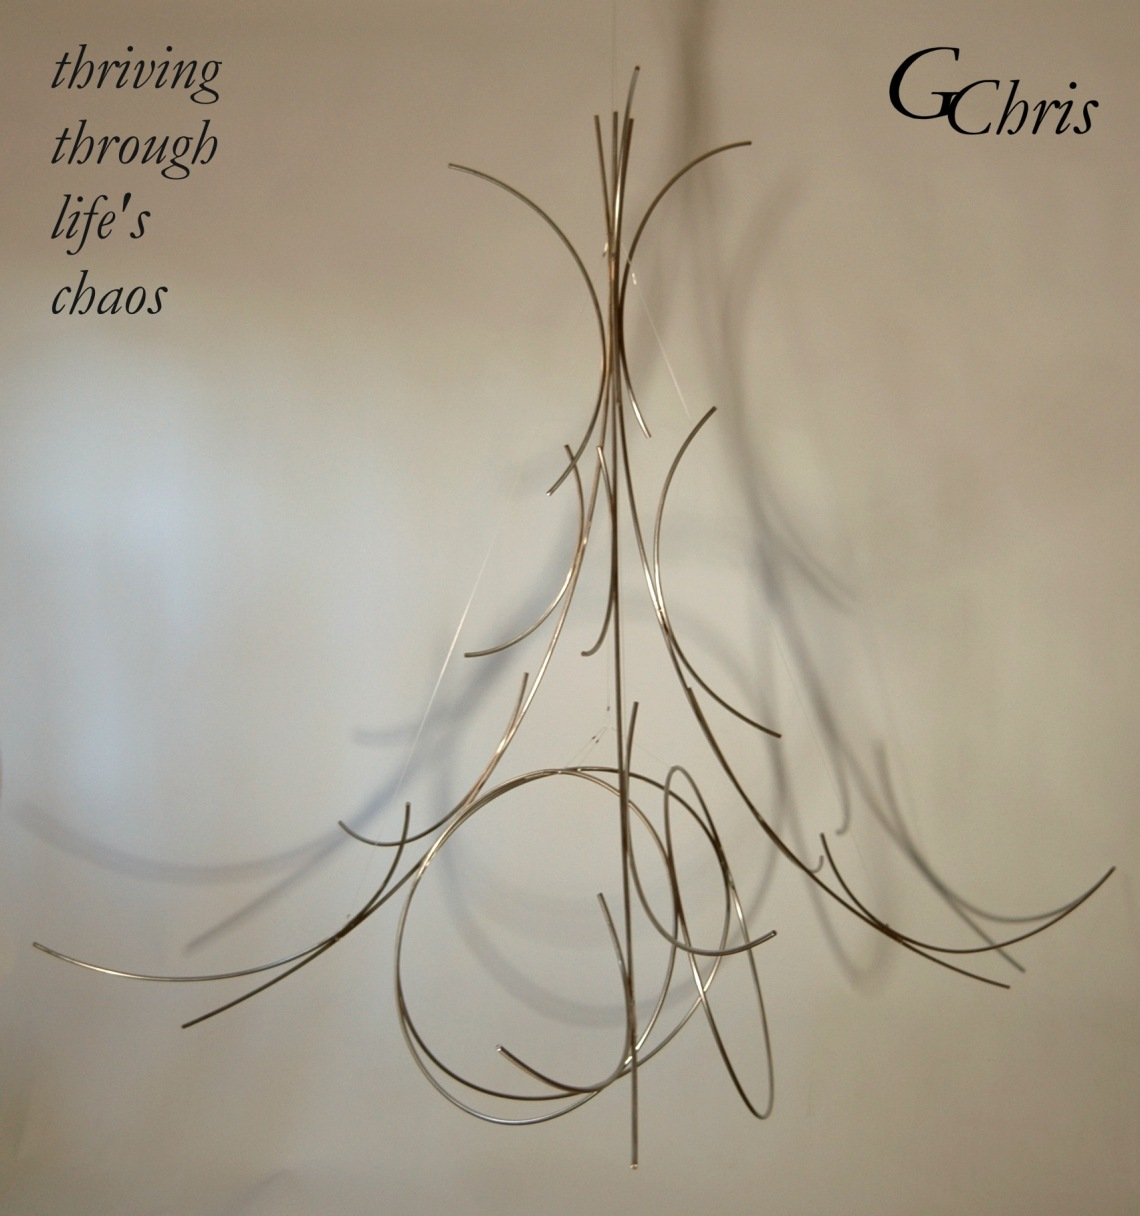 thriving-through-lifes-chaos-102008